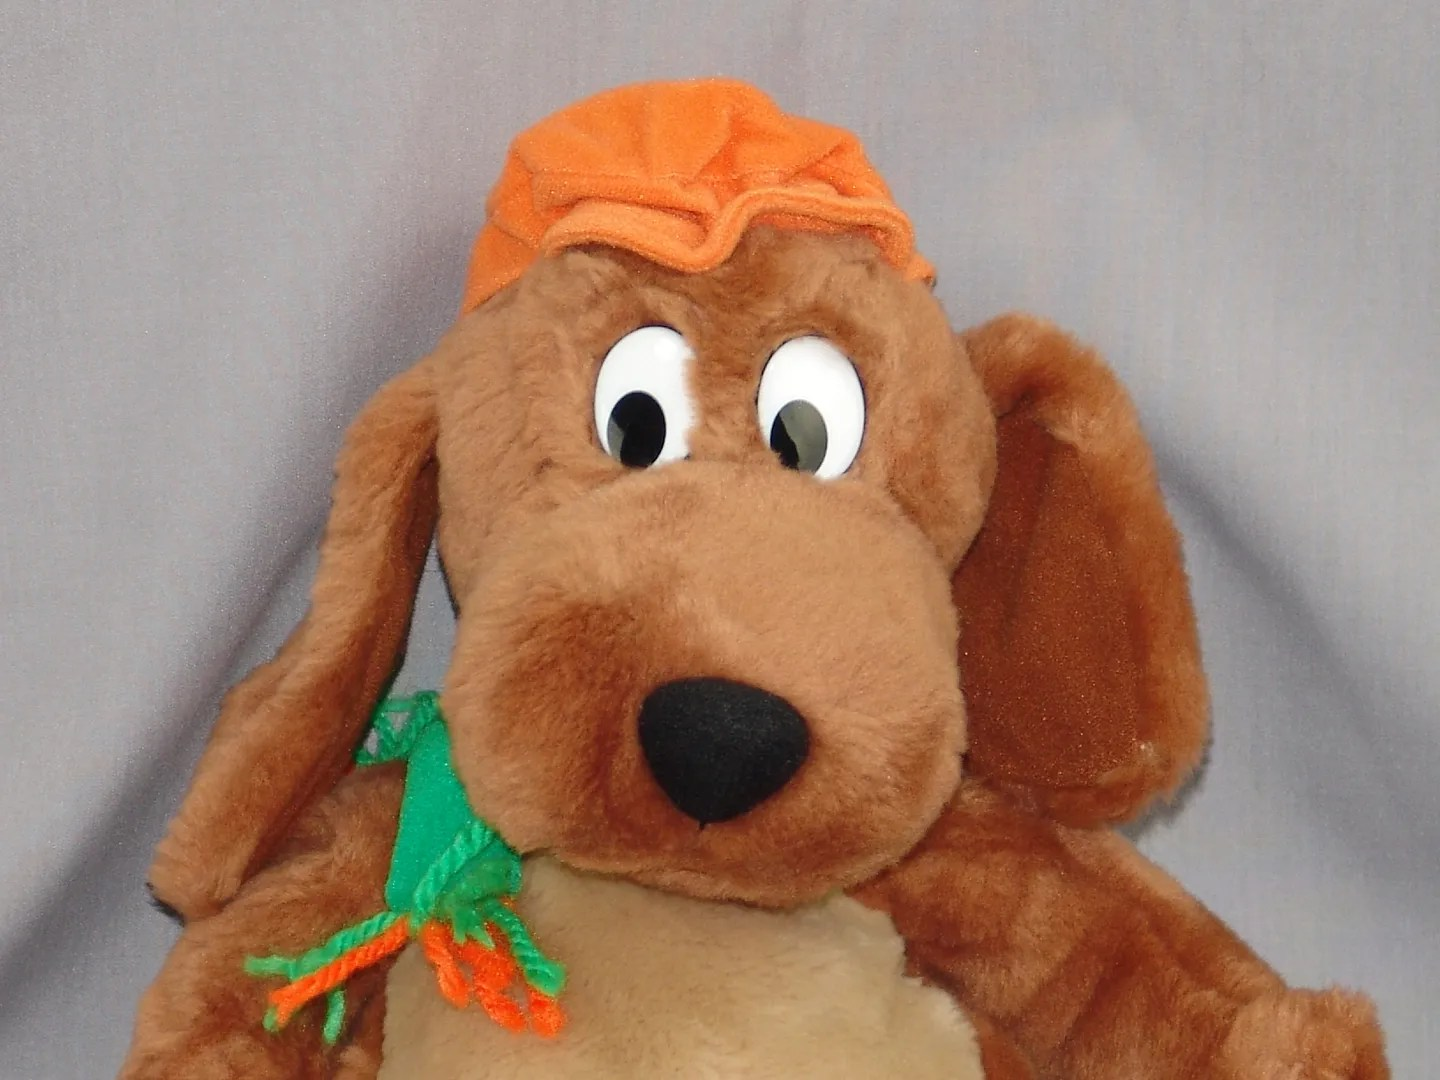 Dr Seuss Children S Book Go Dog Go Plush Brown Puppy Toy